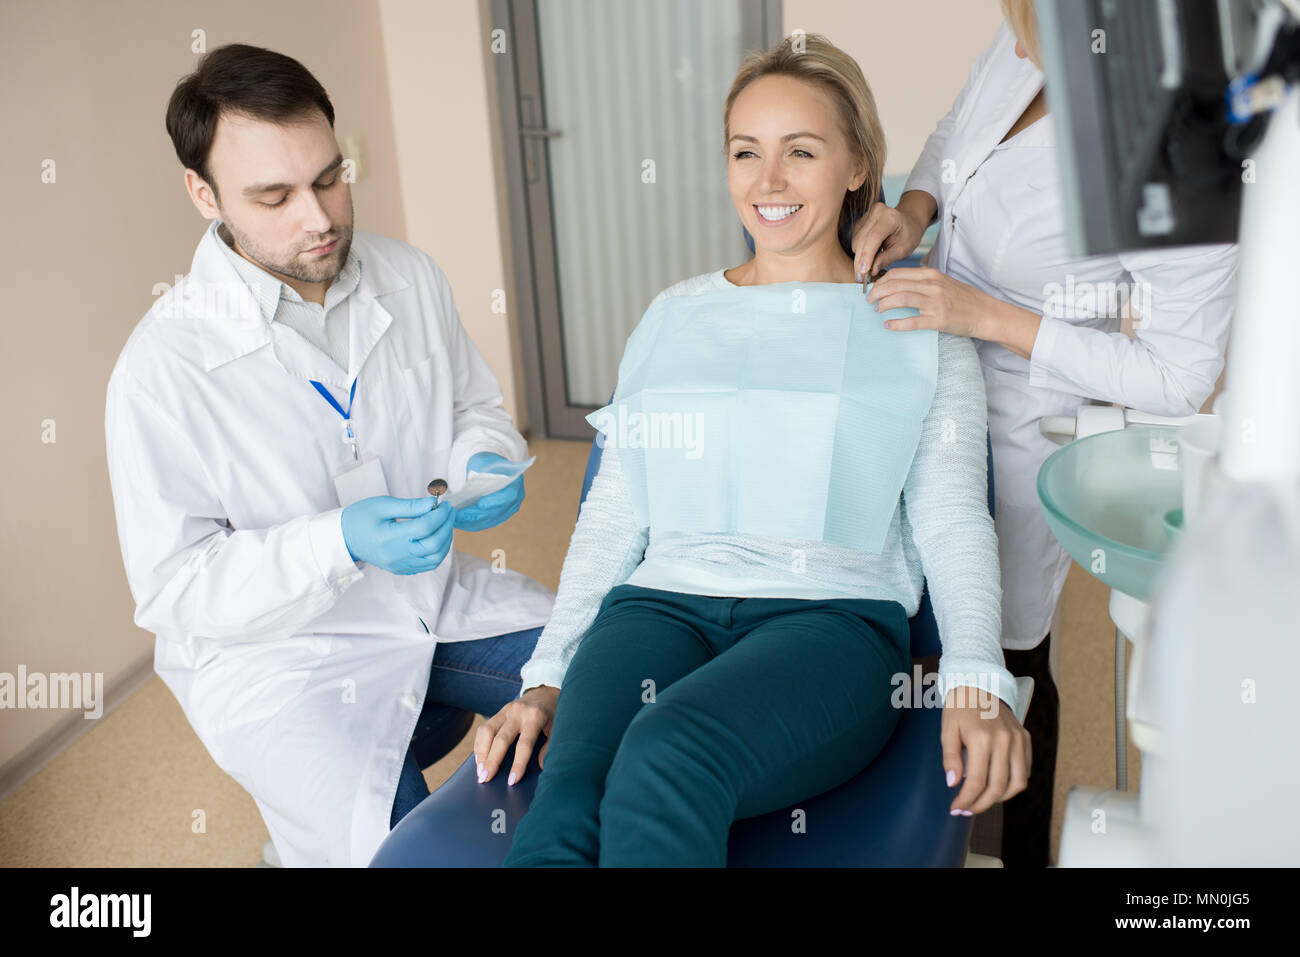 Crop assistant preparing cheerful girl while dentist getting special clean tools from bag. - Stock Image